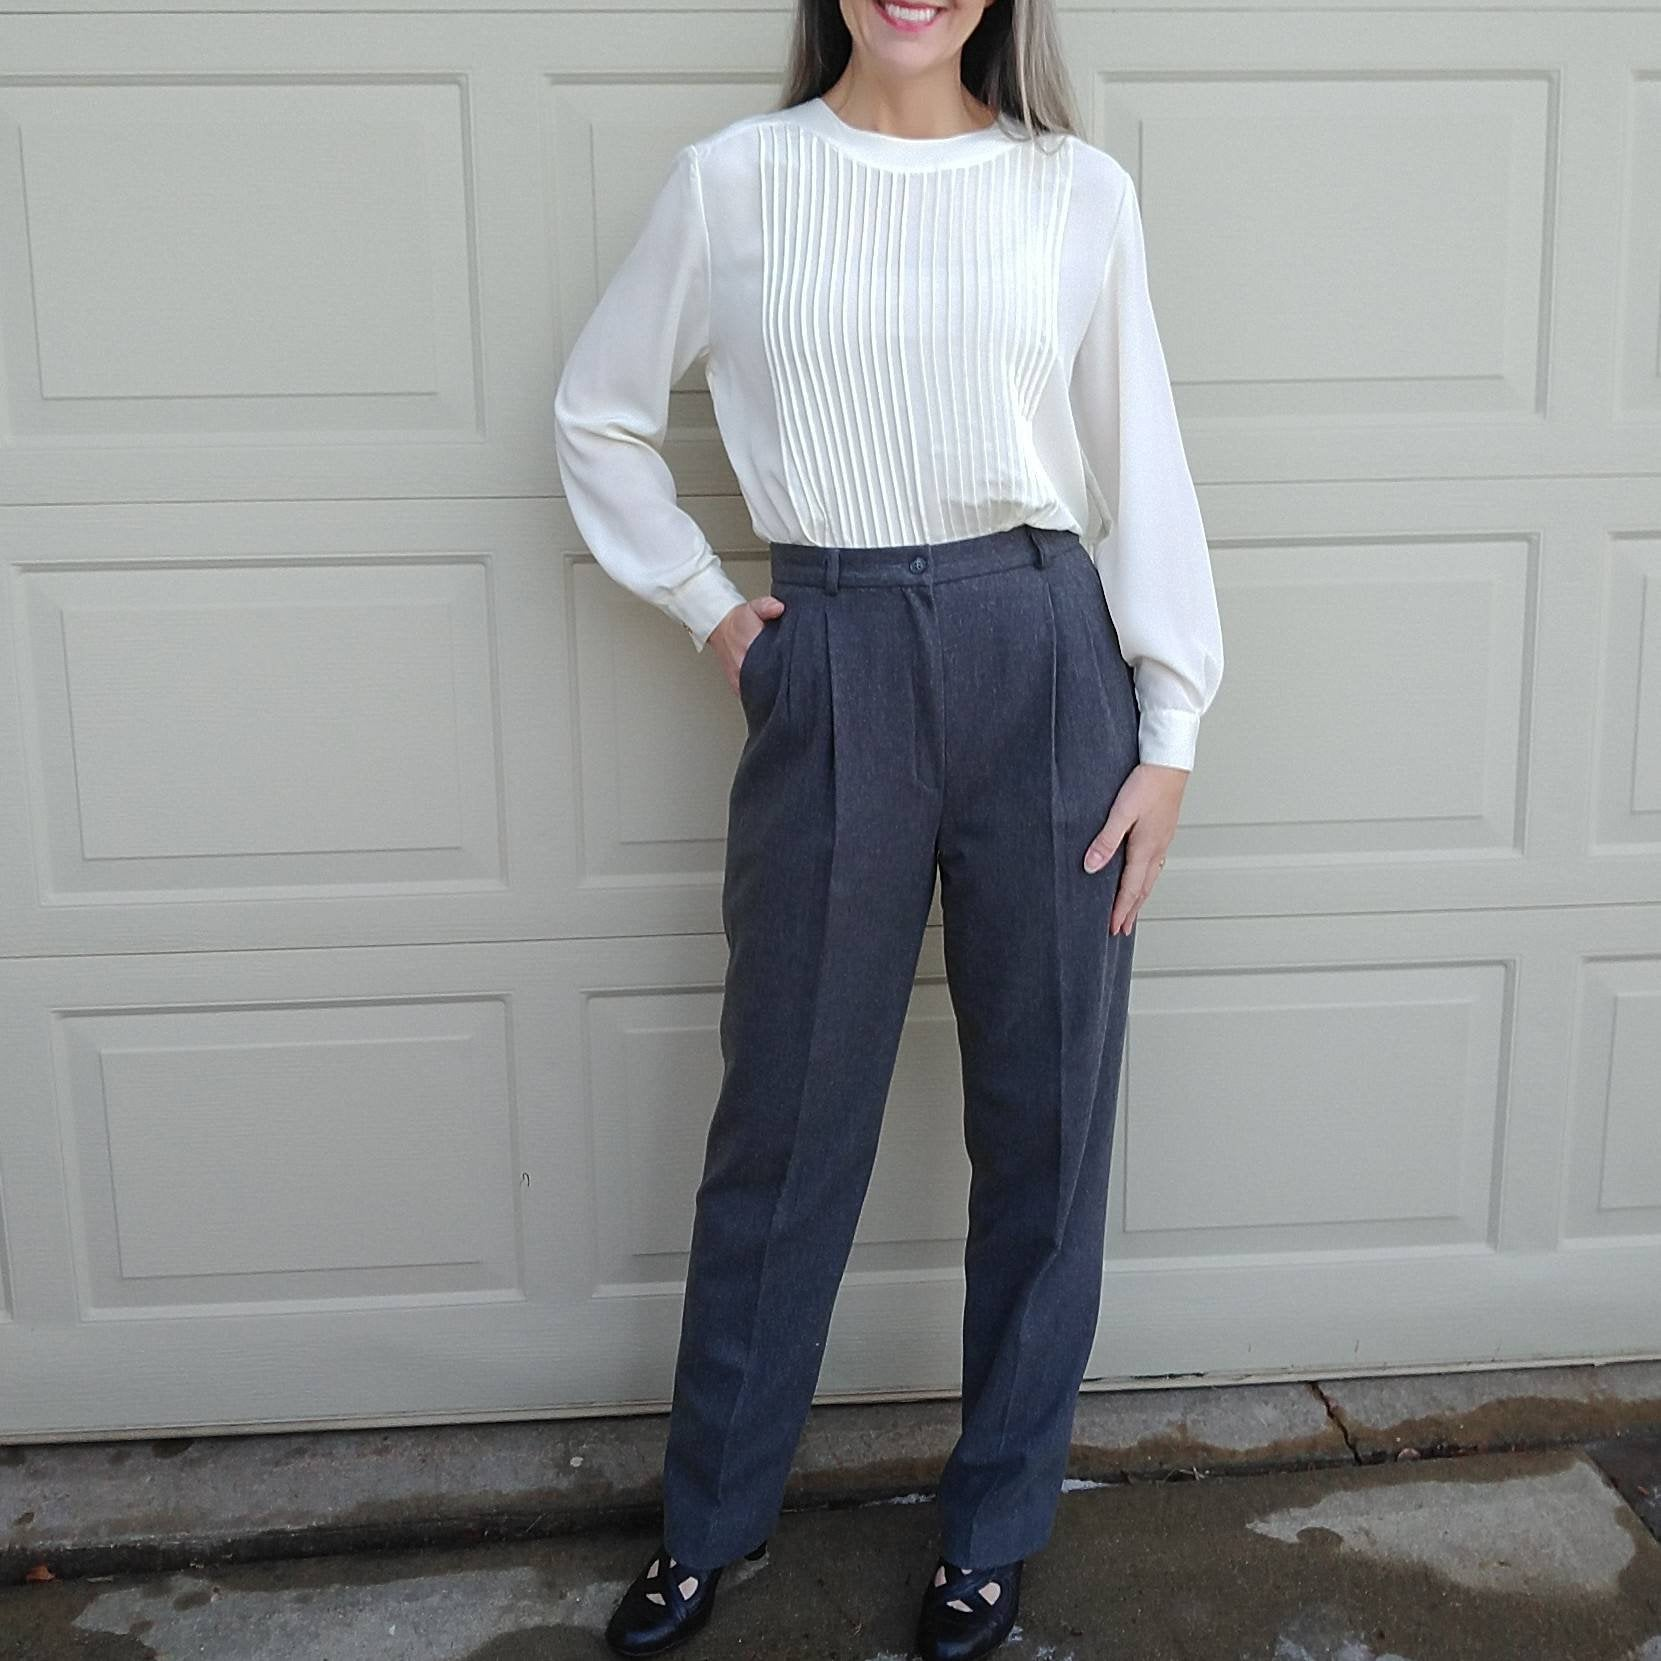 1980s IVORY PINTUCKED BLOUSE petite sophisticate S (D4)